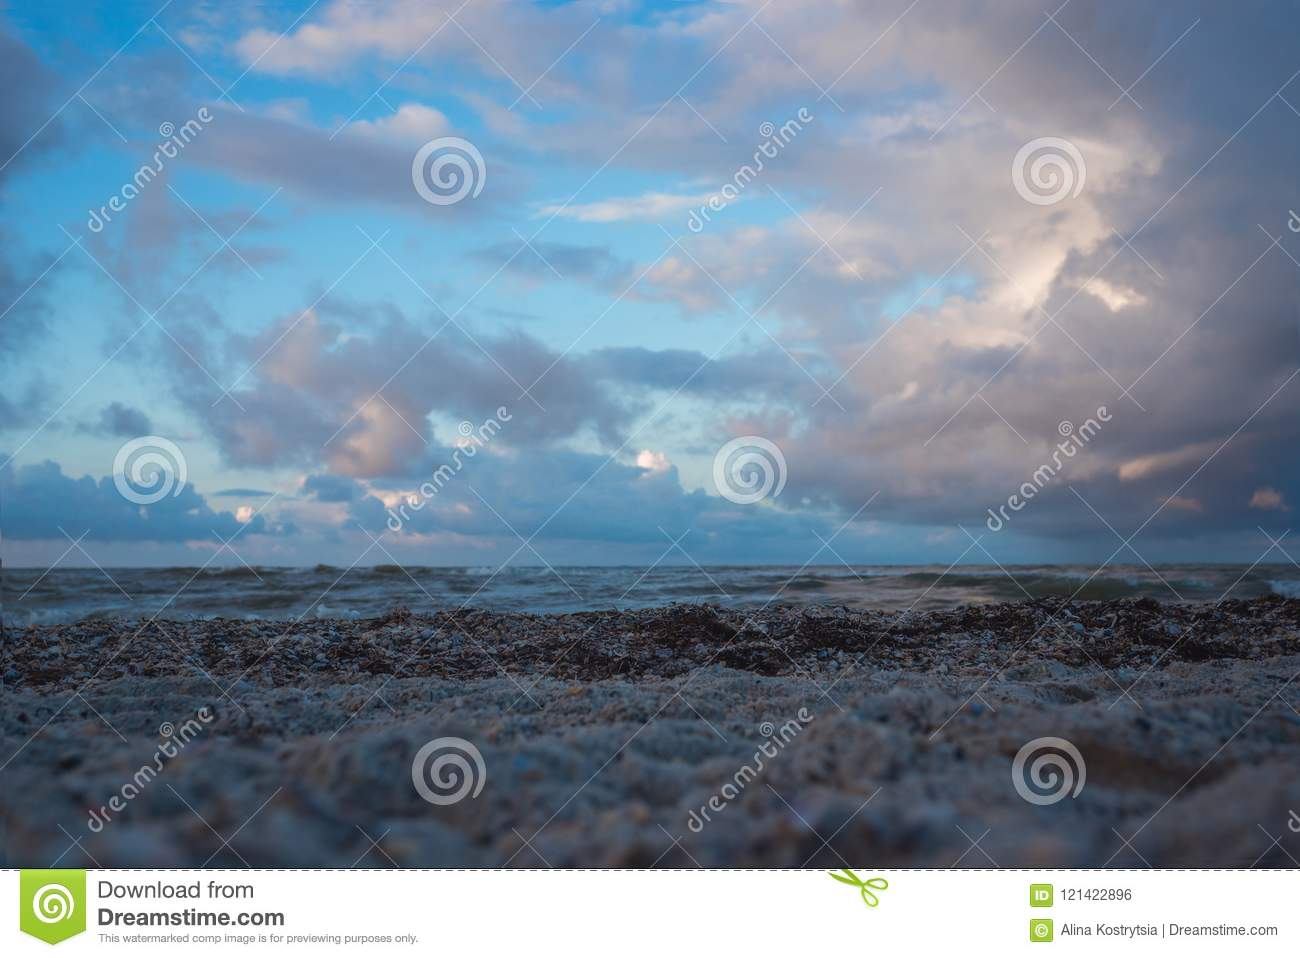 Cloudy weather at the sea with beautiful clouds